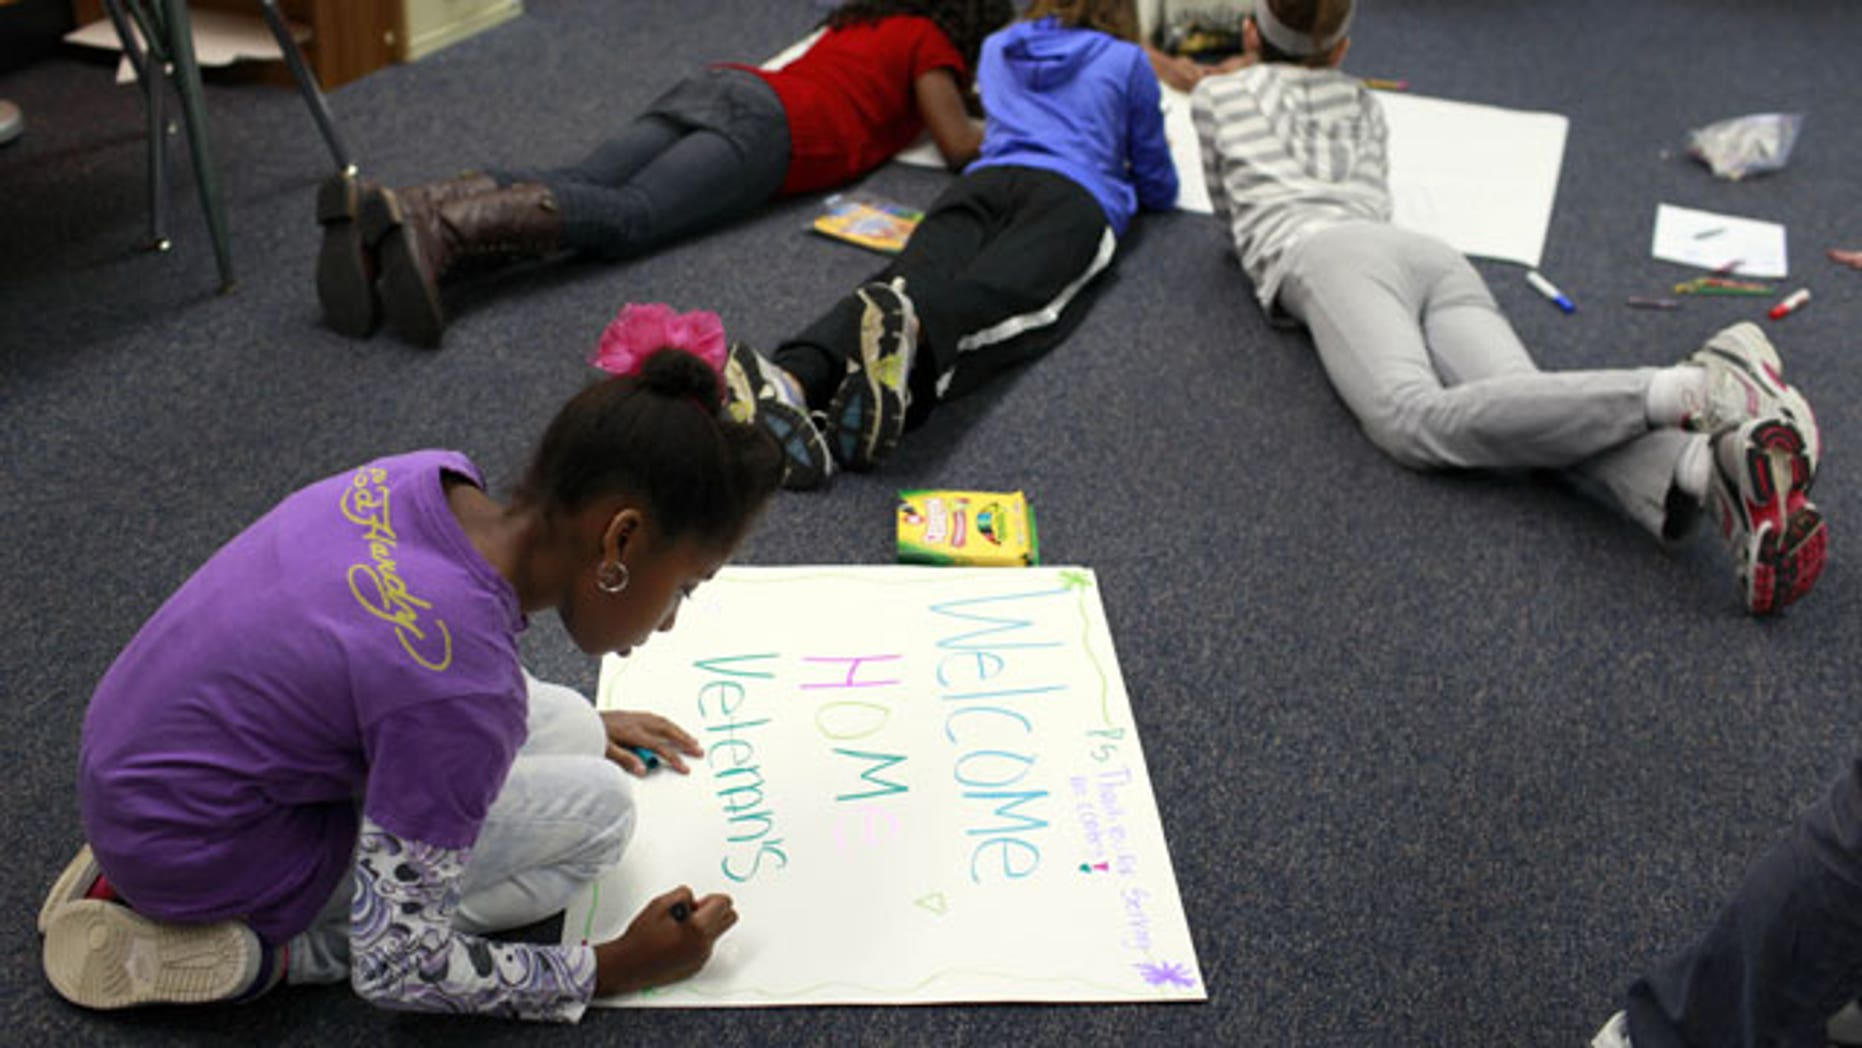 """January 25, 2012: Niliah Banks, foreground, works with other students in her fifth grade class at Ross Elementary create hand-made signs in Creve Coeur, Mo. The signs will be used when St. Louis hosts a """"Welcome Home the Heroes from Iraq Day"""" on Jan. 28."""